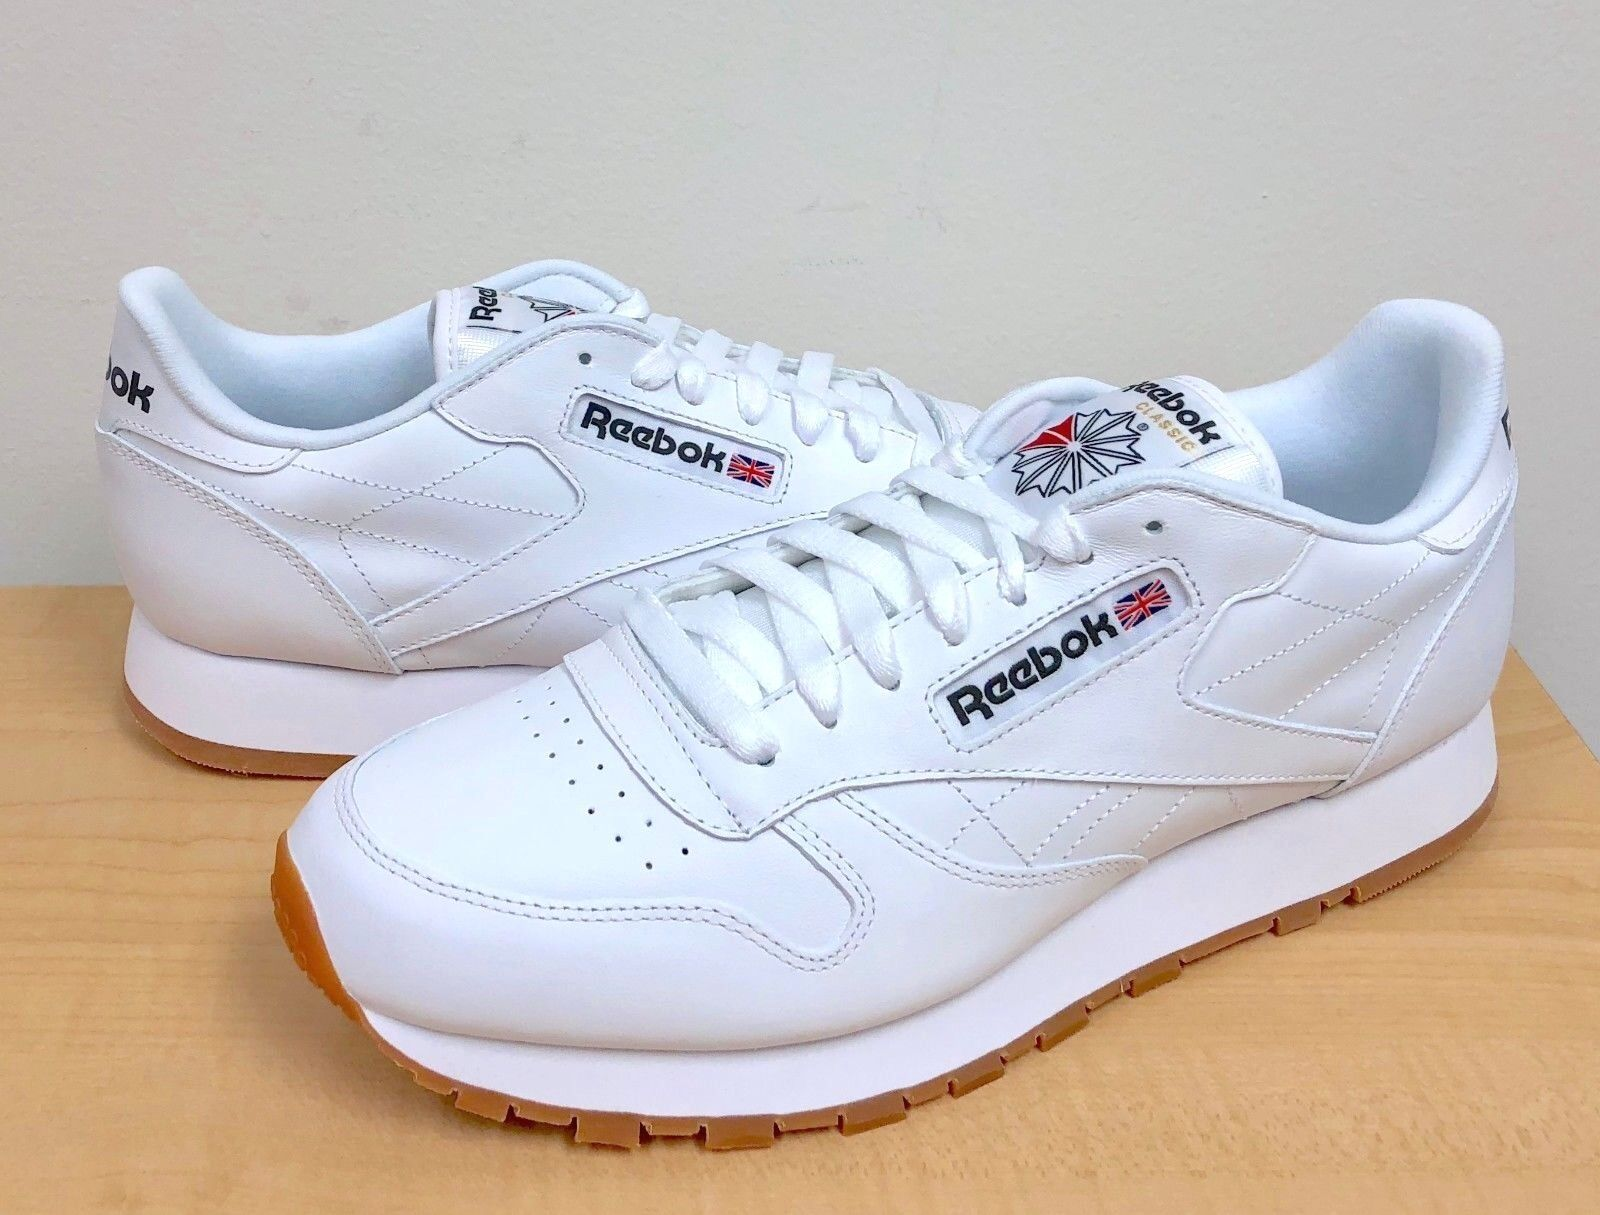 c3c9a530390 Reebok Classic Leather 49797 White gum Men US Sz 14 for sale online ...